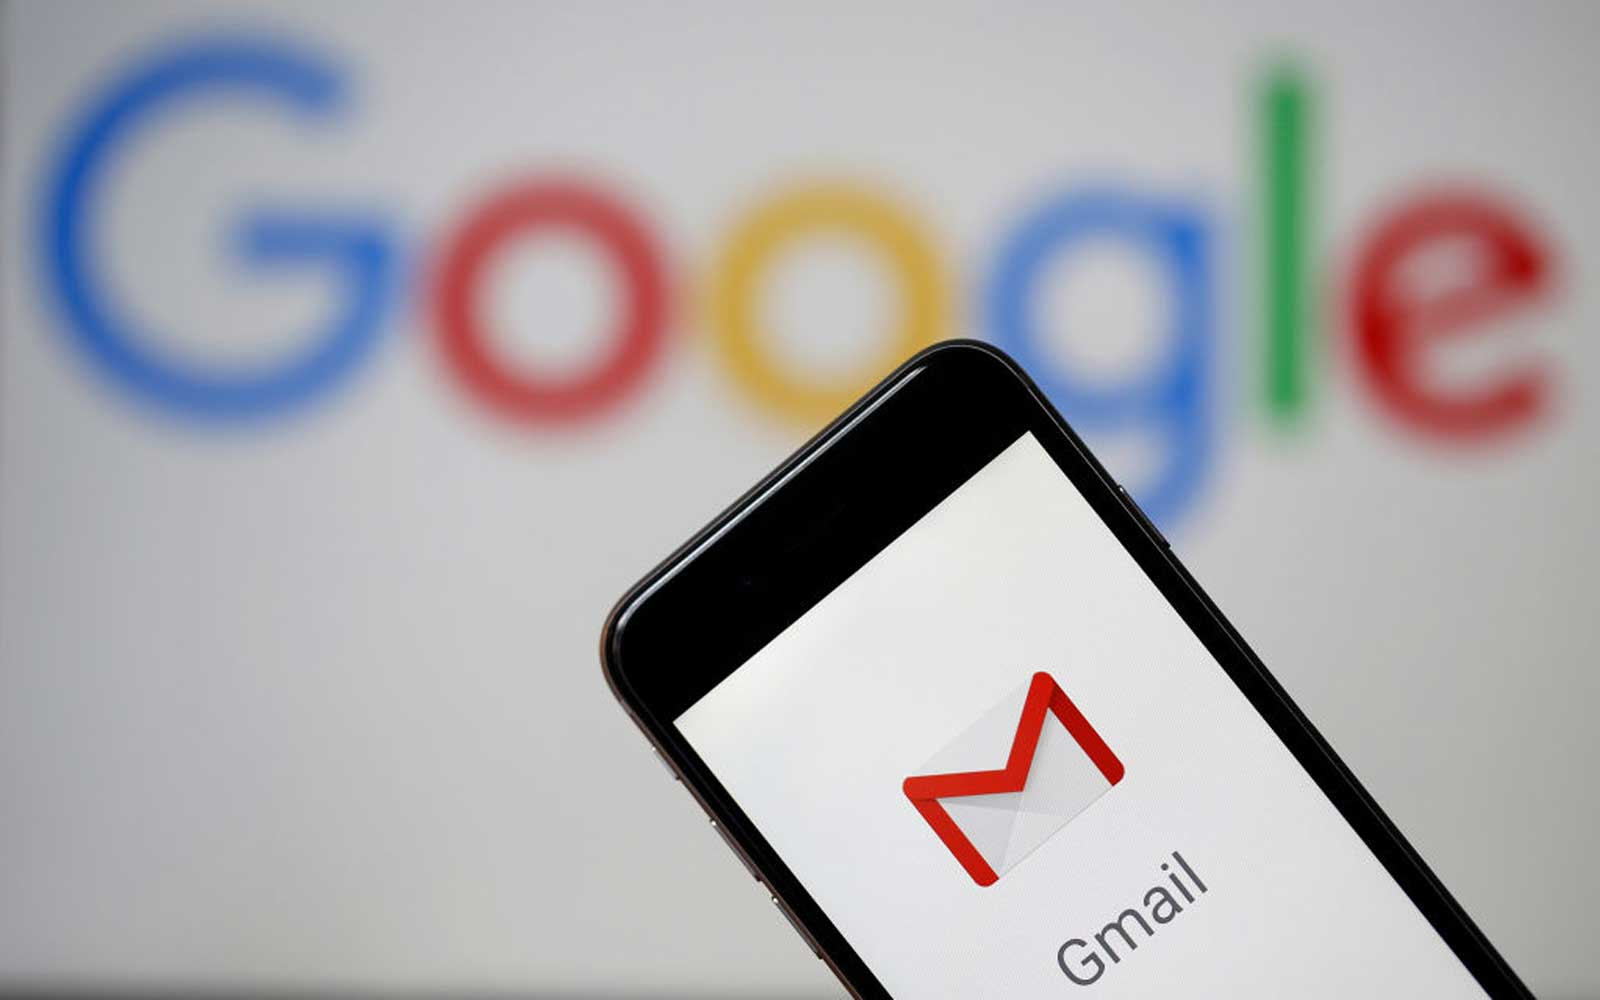 In this photo illustration, the logo of the Gmail app homepage is seen on the screen of an iPhone in front of a computer screen showing a Google logo on July 04, 2018 in Paris, France.